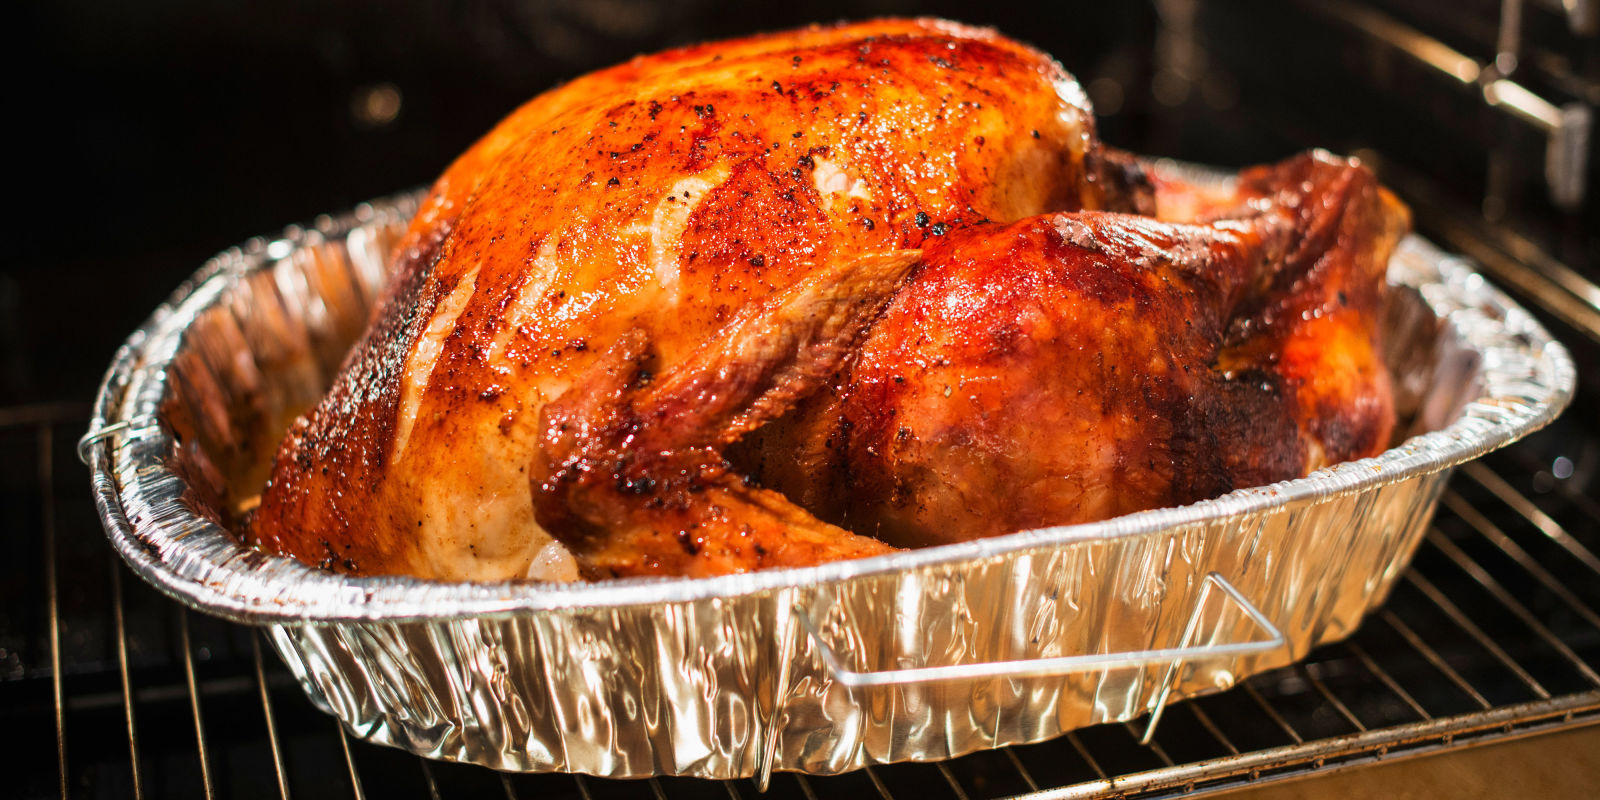 Thanksgiving Turkey Size  How Long To Cook a Turkey Per Pound – Turkey Size Cooking